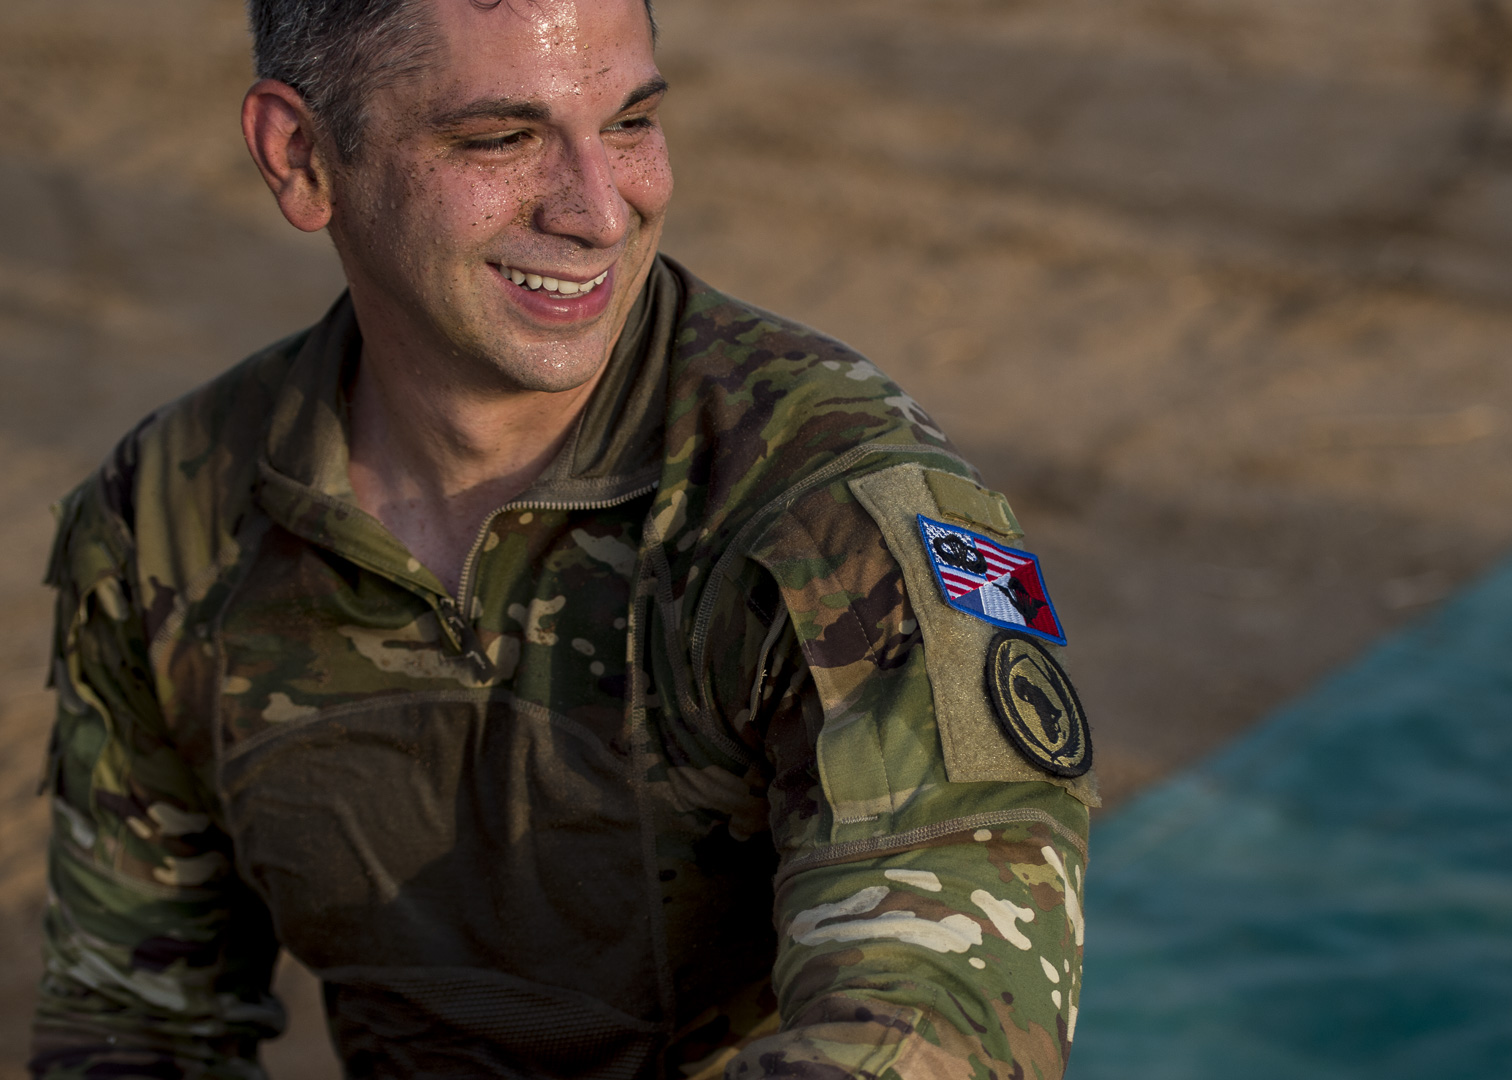 U.S. Army Maj. Marcus Miller, special technical operations chief, assigned to Combined Joint Task Force-Horn of Africa re-packs his parachute after a static line jump with American and coalition partners, outside Djibouti City, Djibouti, Sept. 29, 2019. American service members and coalition partners jumped together to celebrate the Feast Day of Archangel Michael, the patron saint of paratroopers. (U.S. Air Force Photo by Senior Airman Codie Trimble)